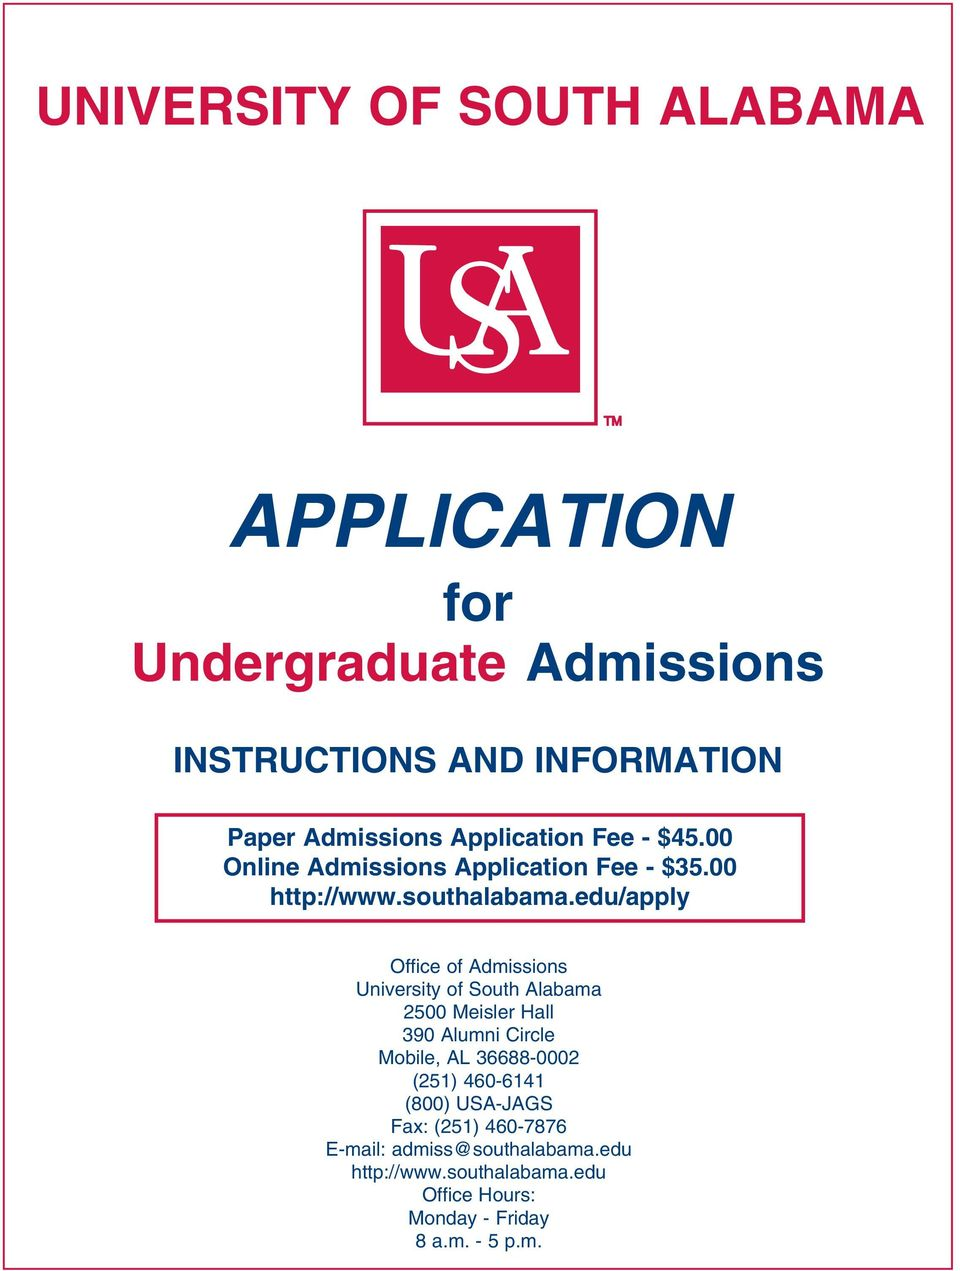 edu/apply Office of Admissions University of South Alabama 2500 Meisler Hall 390 Alumni Circle Mobile, AL 36688-0002